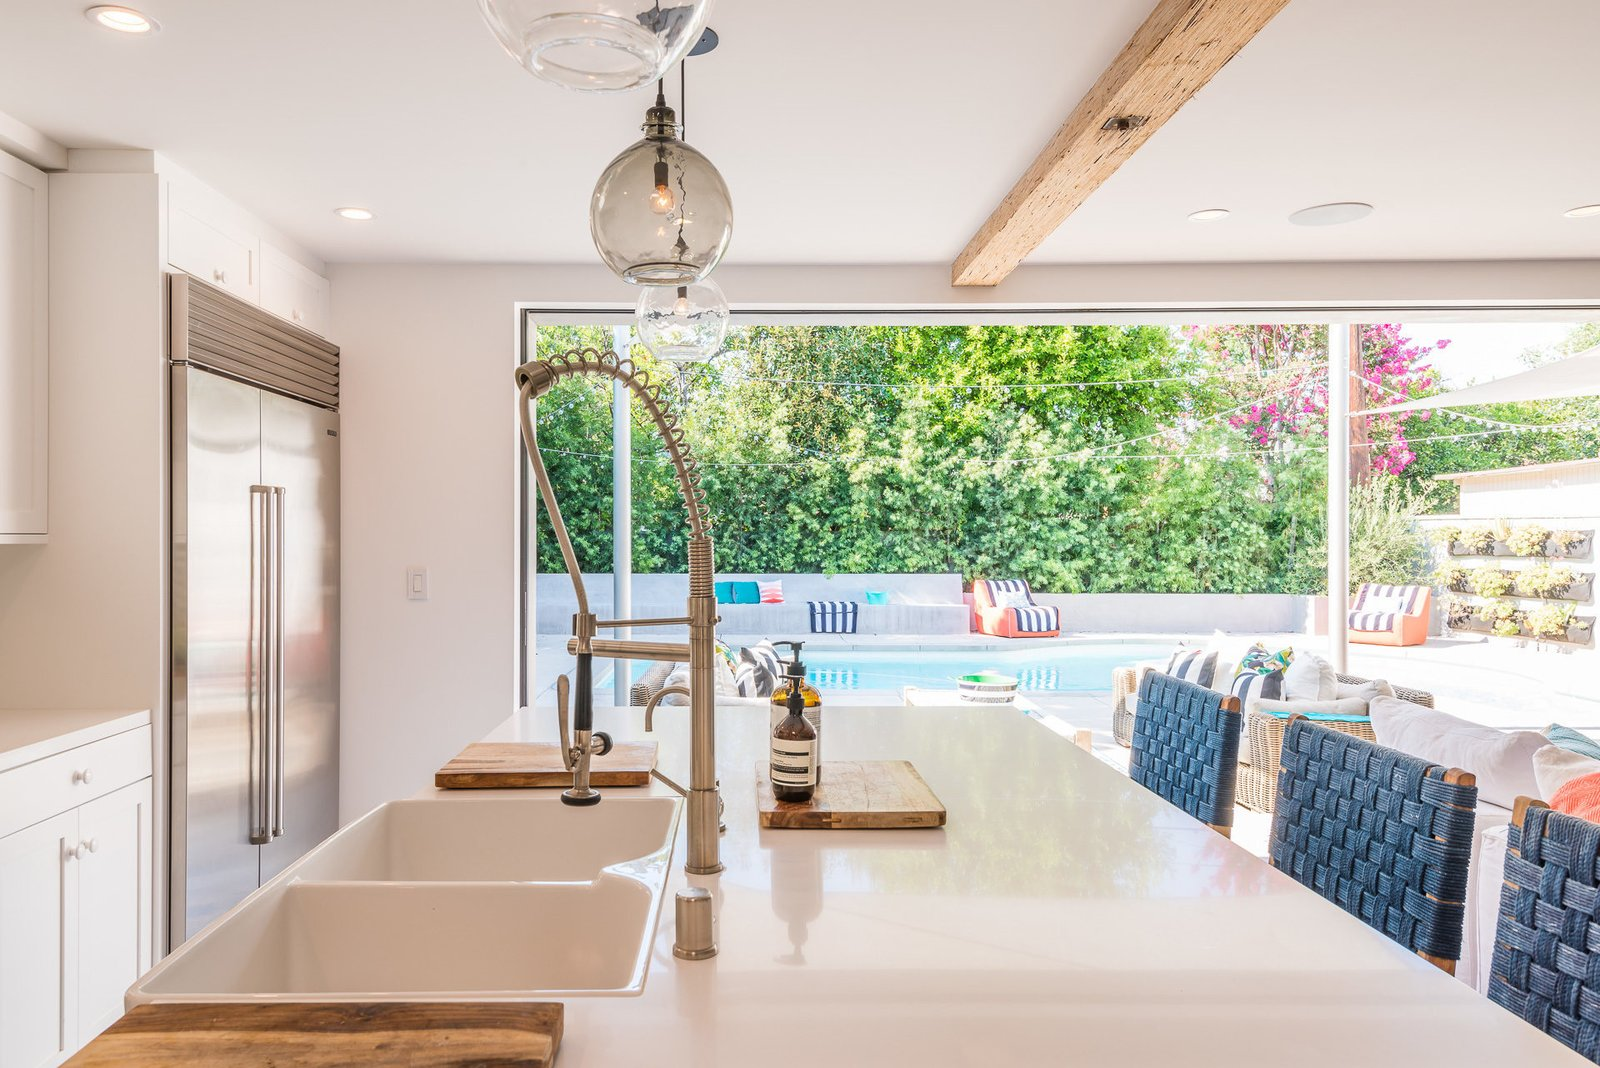 Kitchen, White Cabinet, and Drop In Sink  Mid-Century Meets Boho Chic